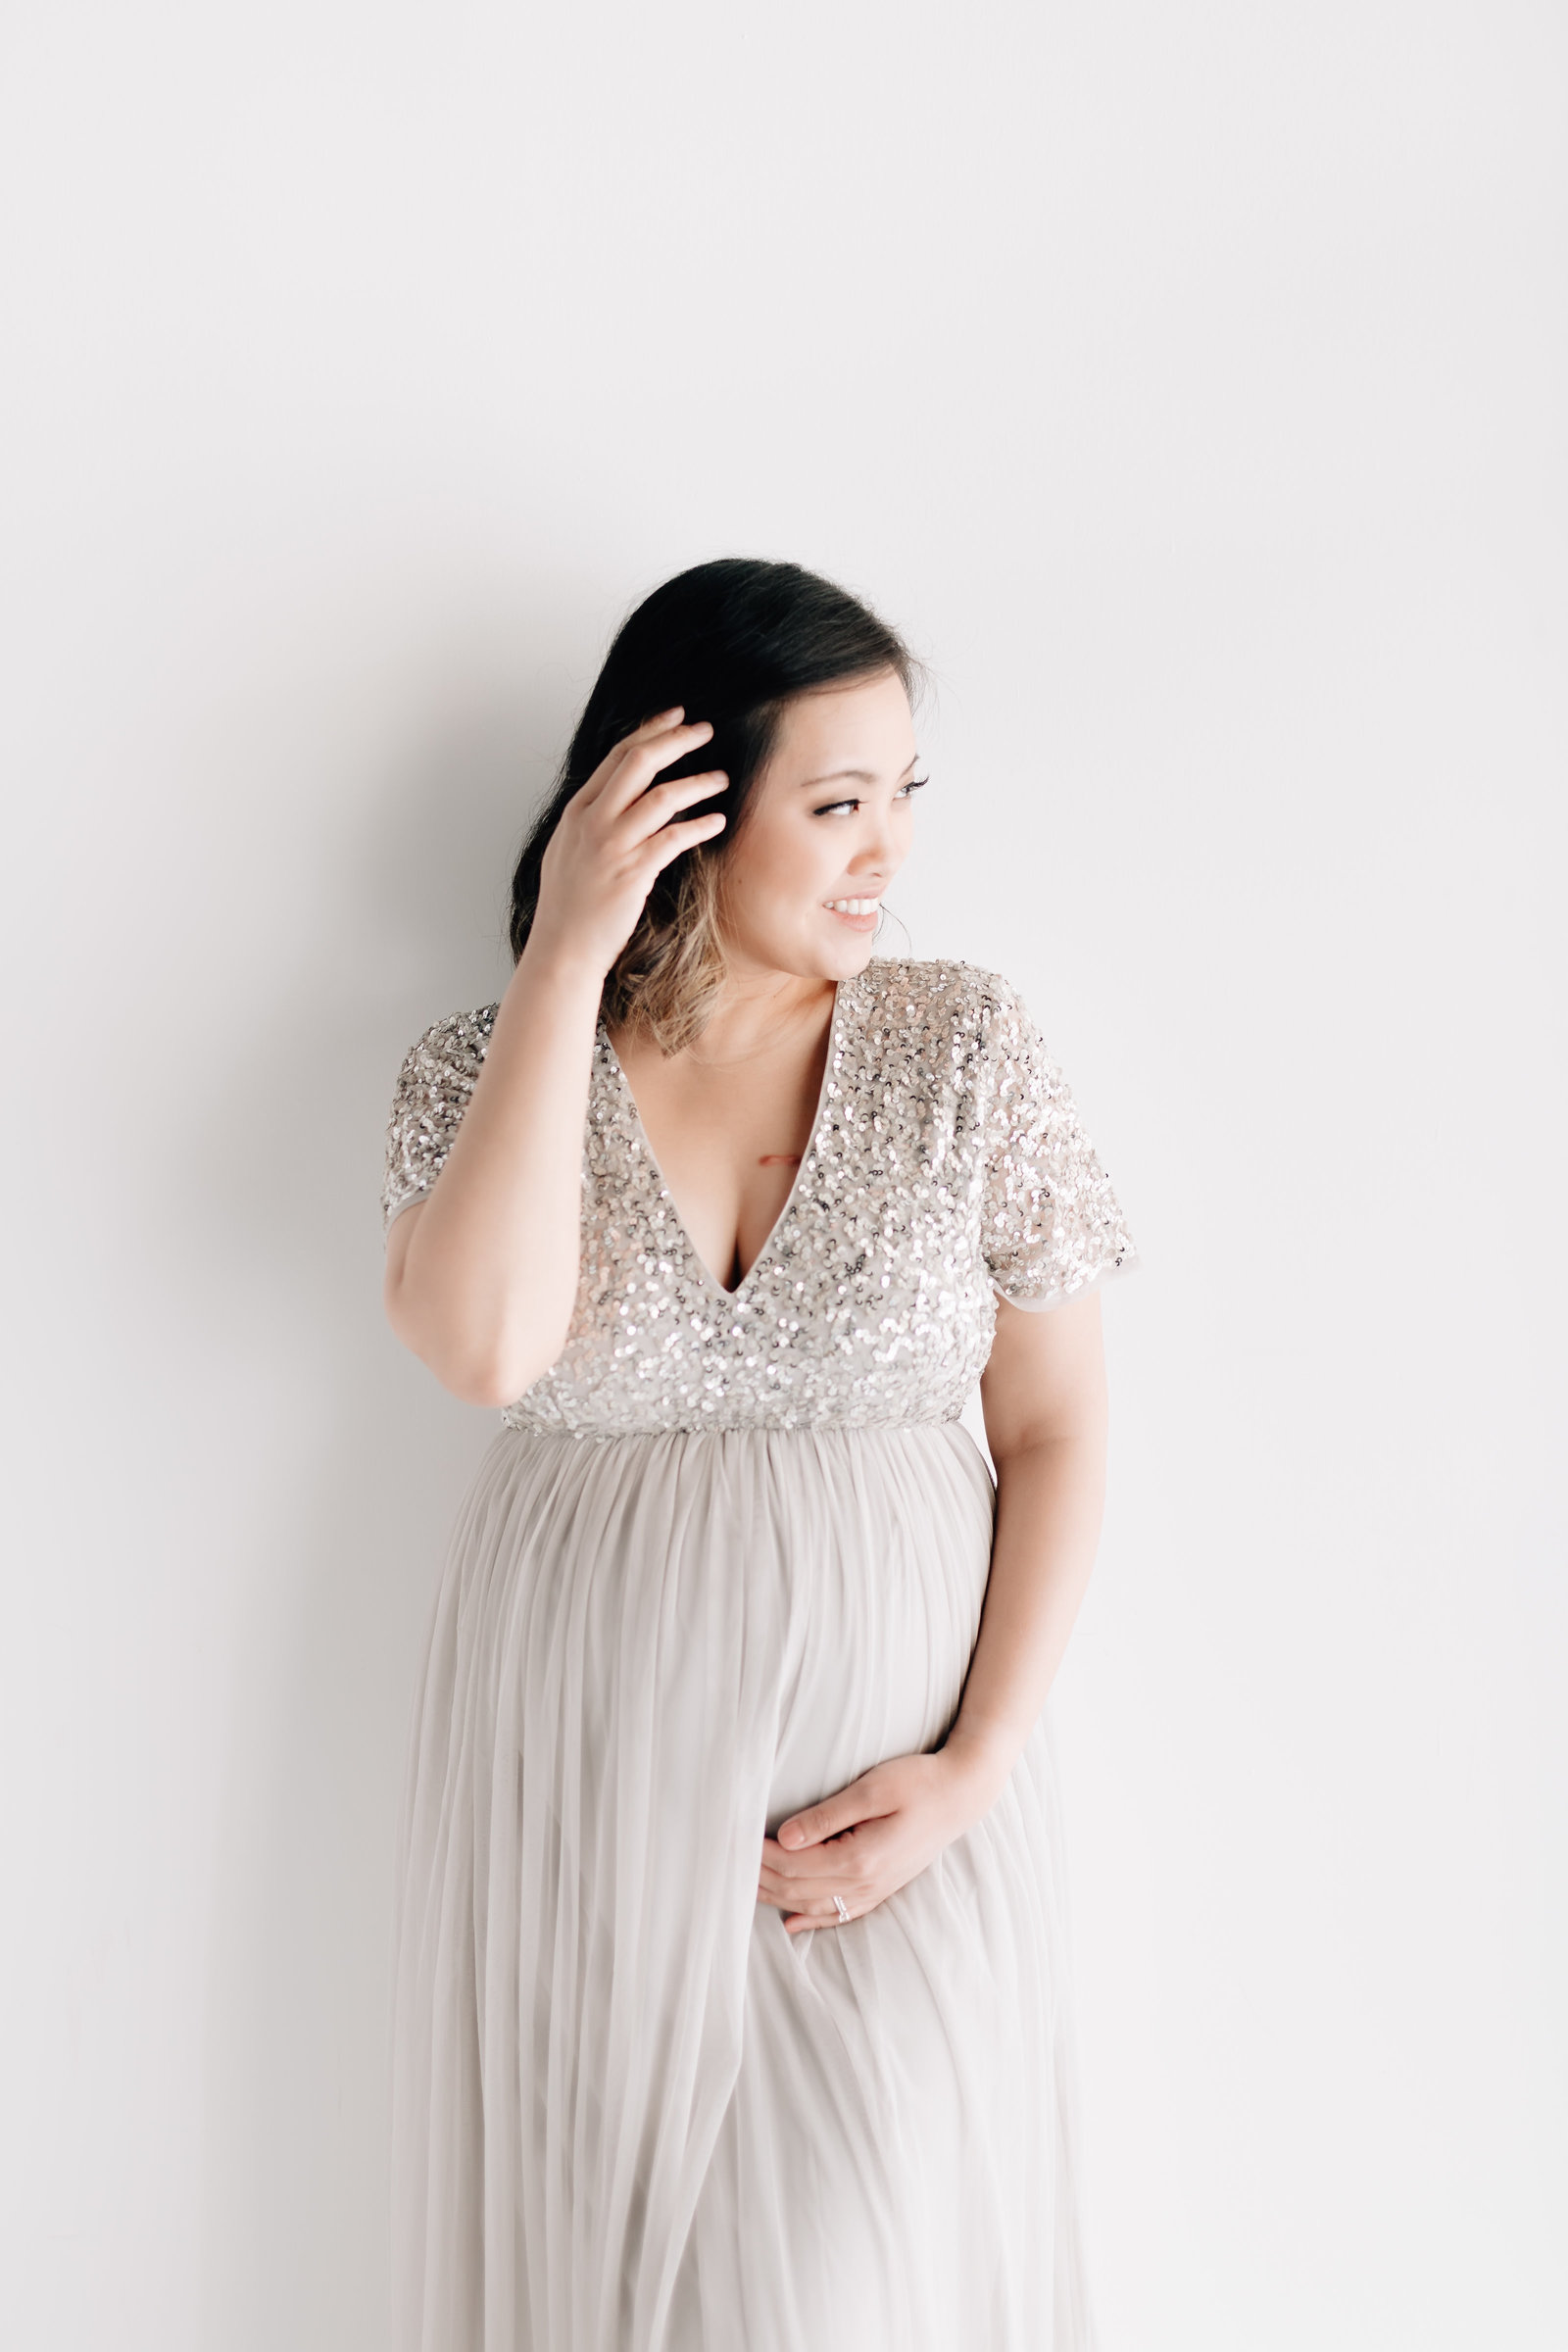 St_Louis_Maternity_Photographer_Kelly_Laramore_Photography5